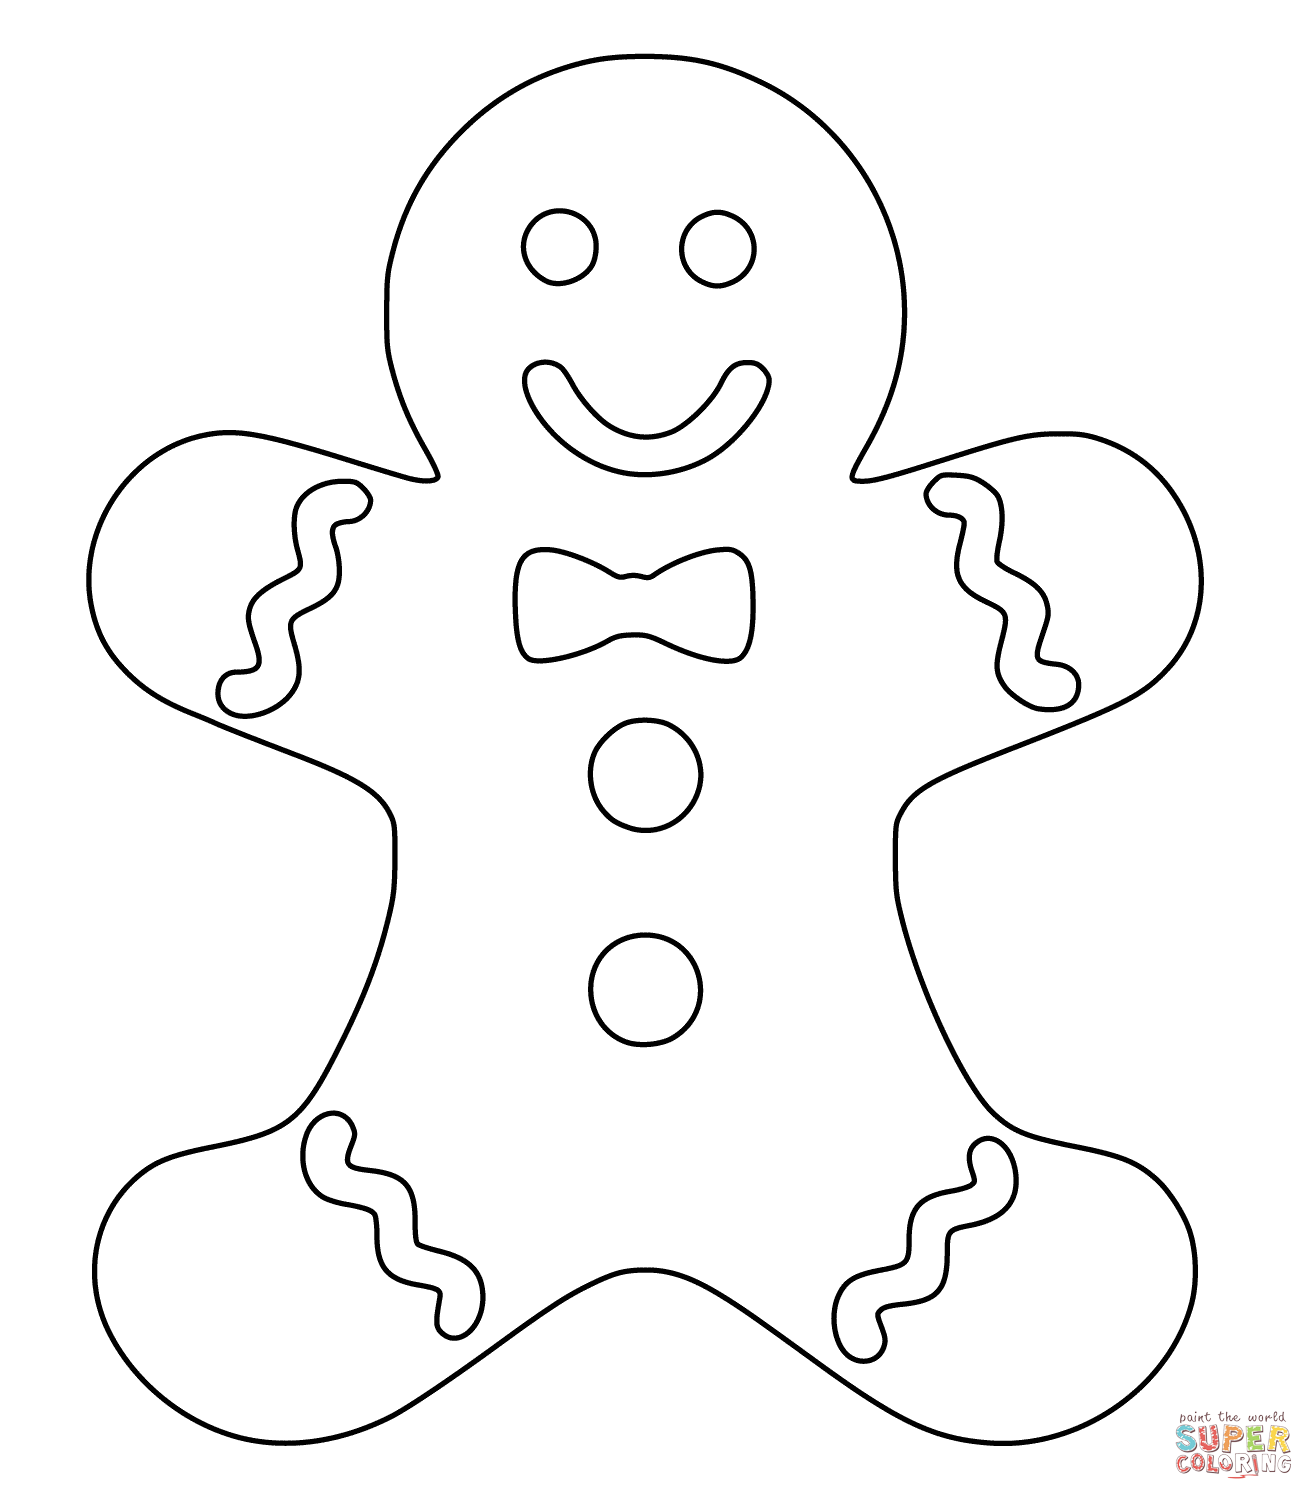 gingerbread man printable gingerbread man coloring pages to download and print for free gingerbread printable man